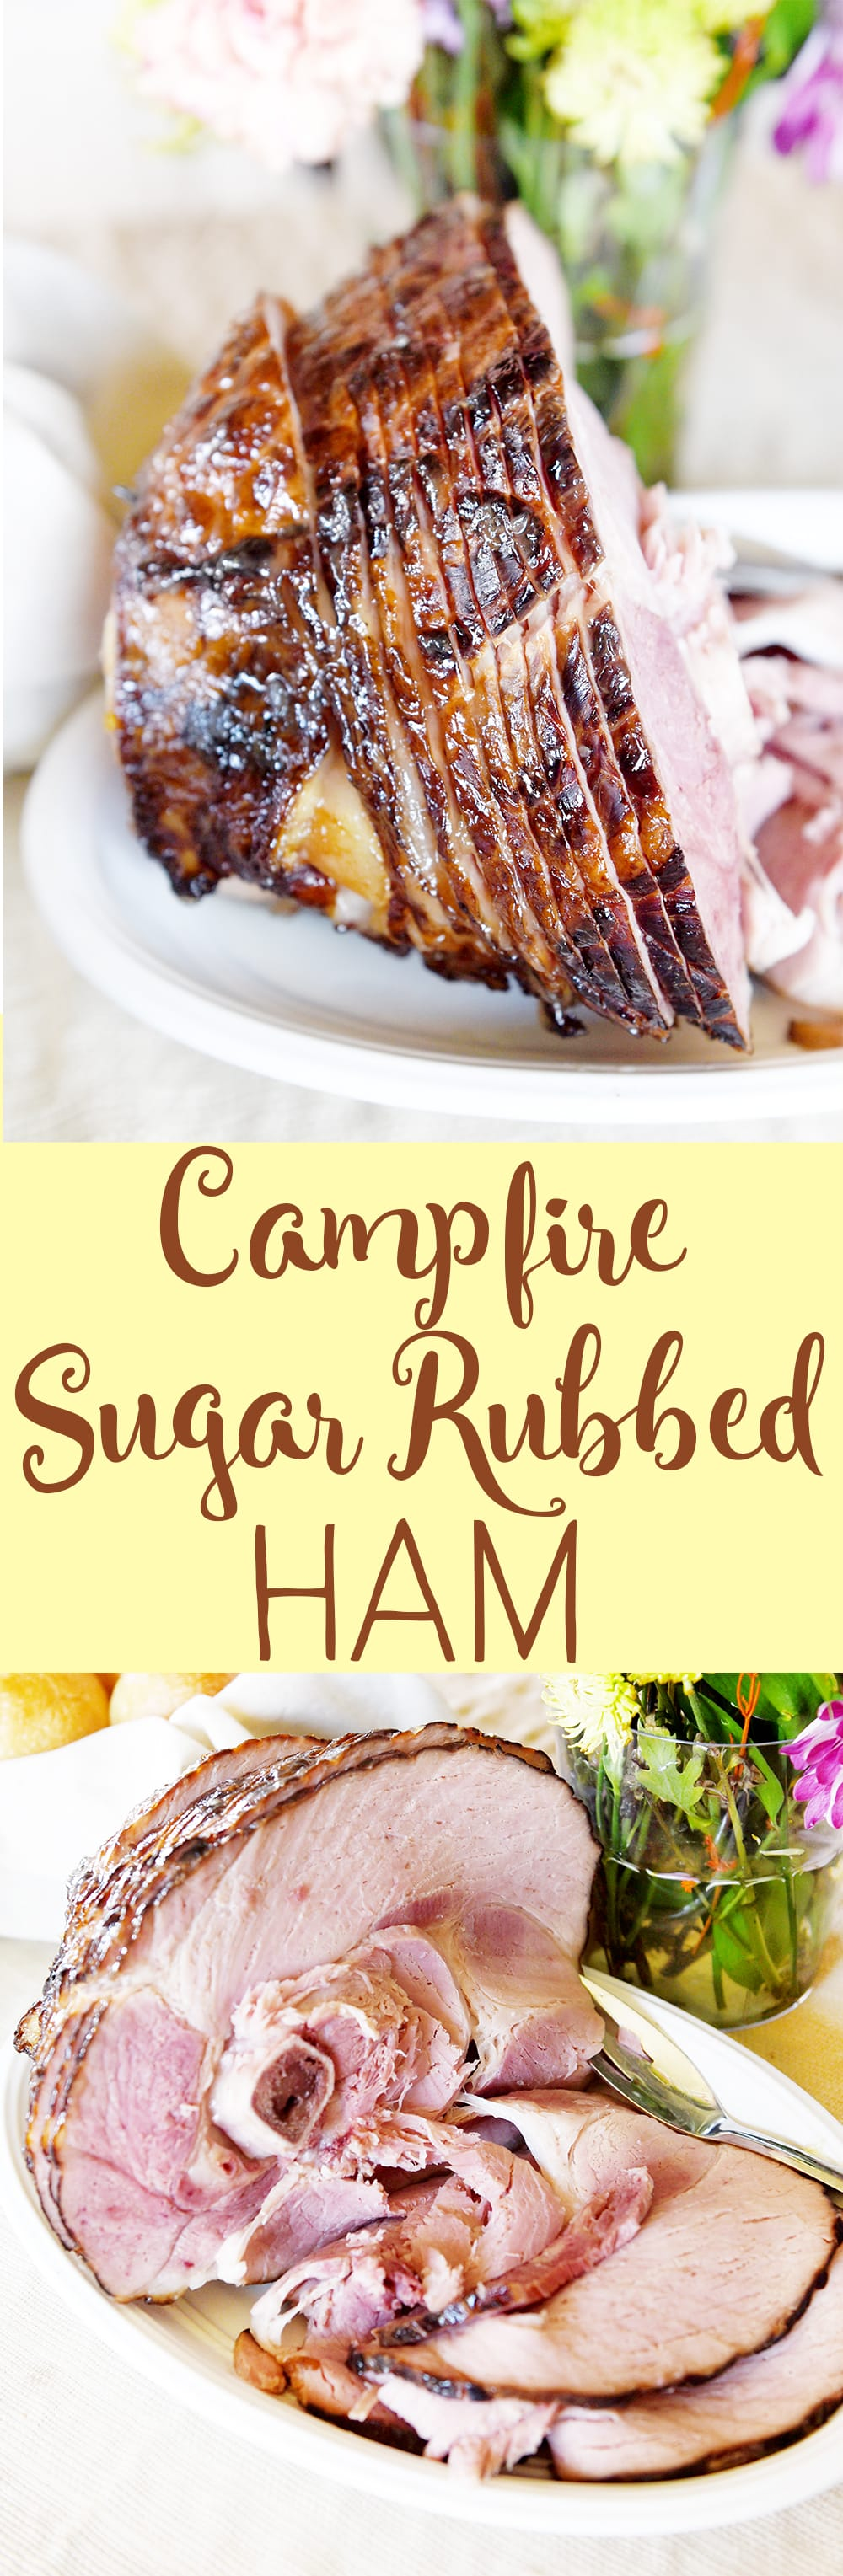 Campfire Sugar Rubbed Curemaster Reserve Ham delivered to your door